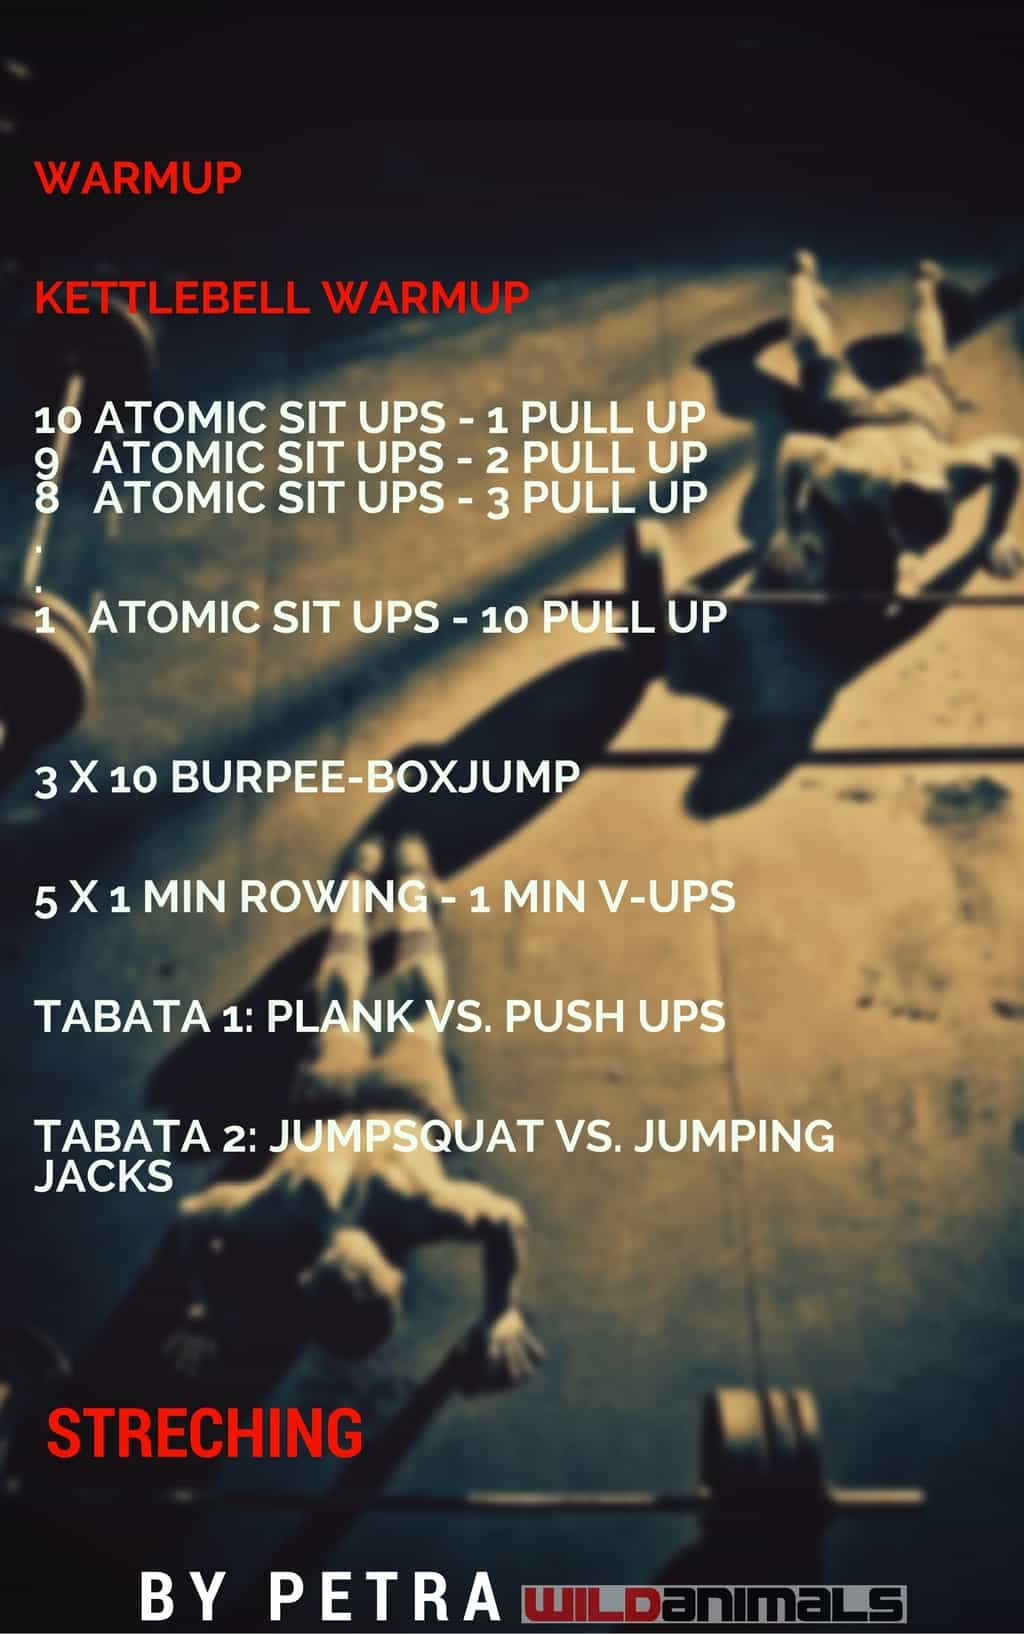 Atomic Sit UP, Kettlebell, burpee, plank, Sissy test, TABATA